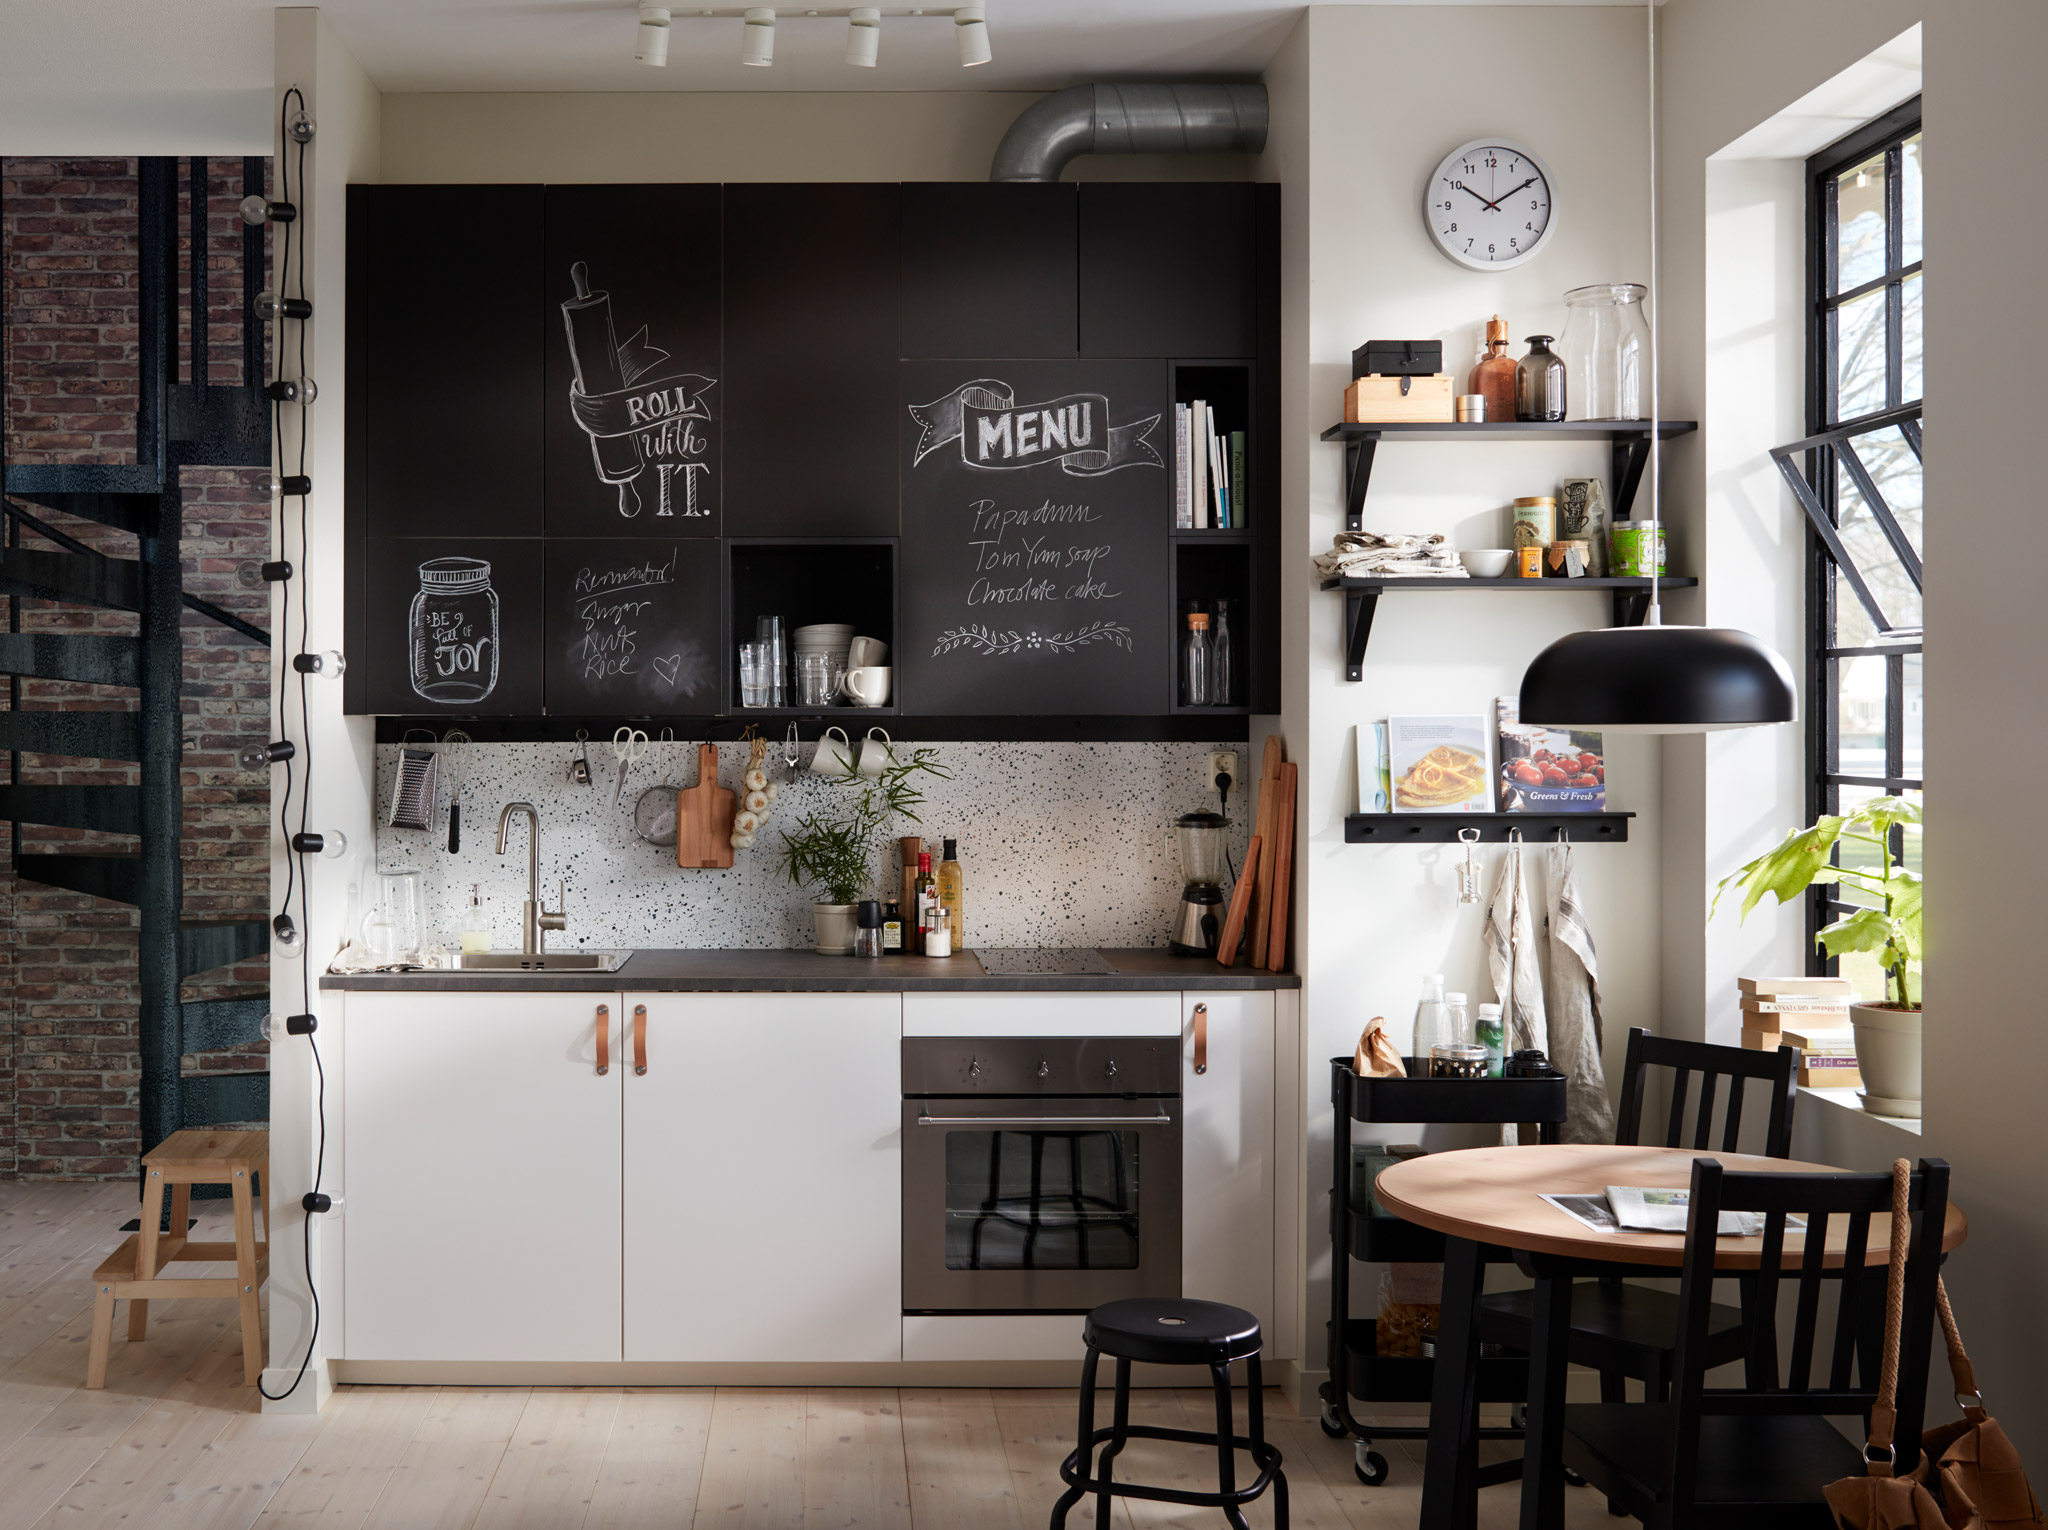 Ikea Kitchen Design The 2018 Ikea Catalog Means New And Discontinued Kitchen Items